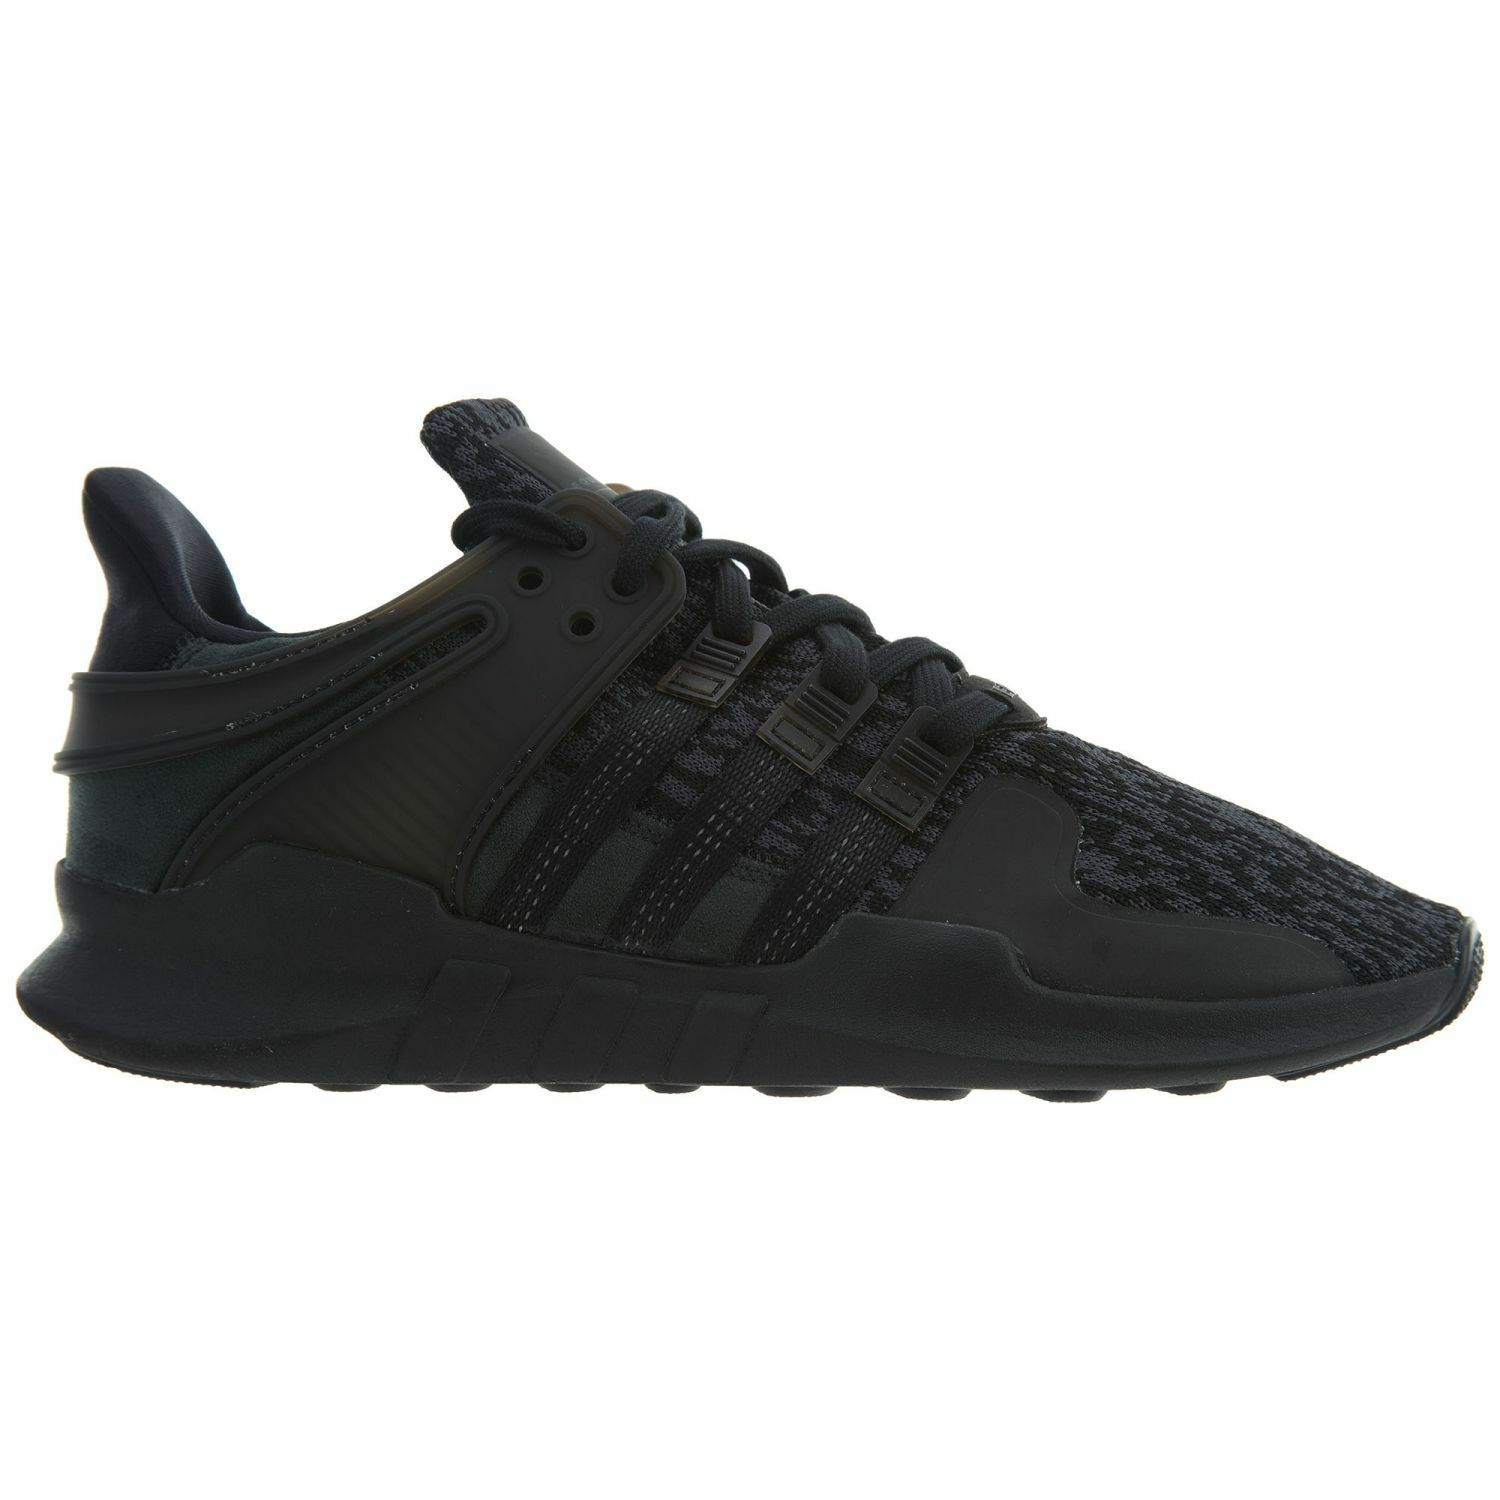 Adidas EQT Support Adv Mens BY9589 Black Pixel Knit Athletic Shoes Size 10